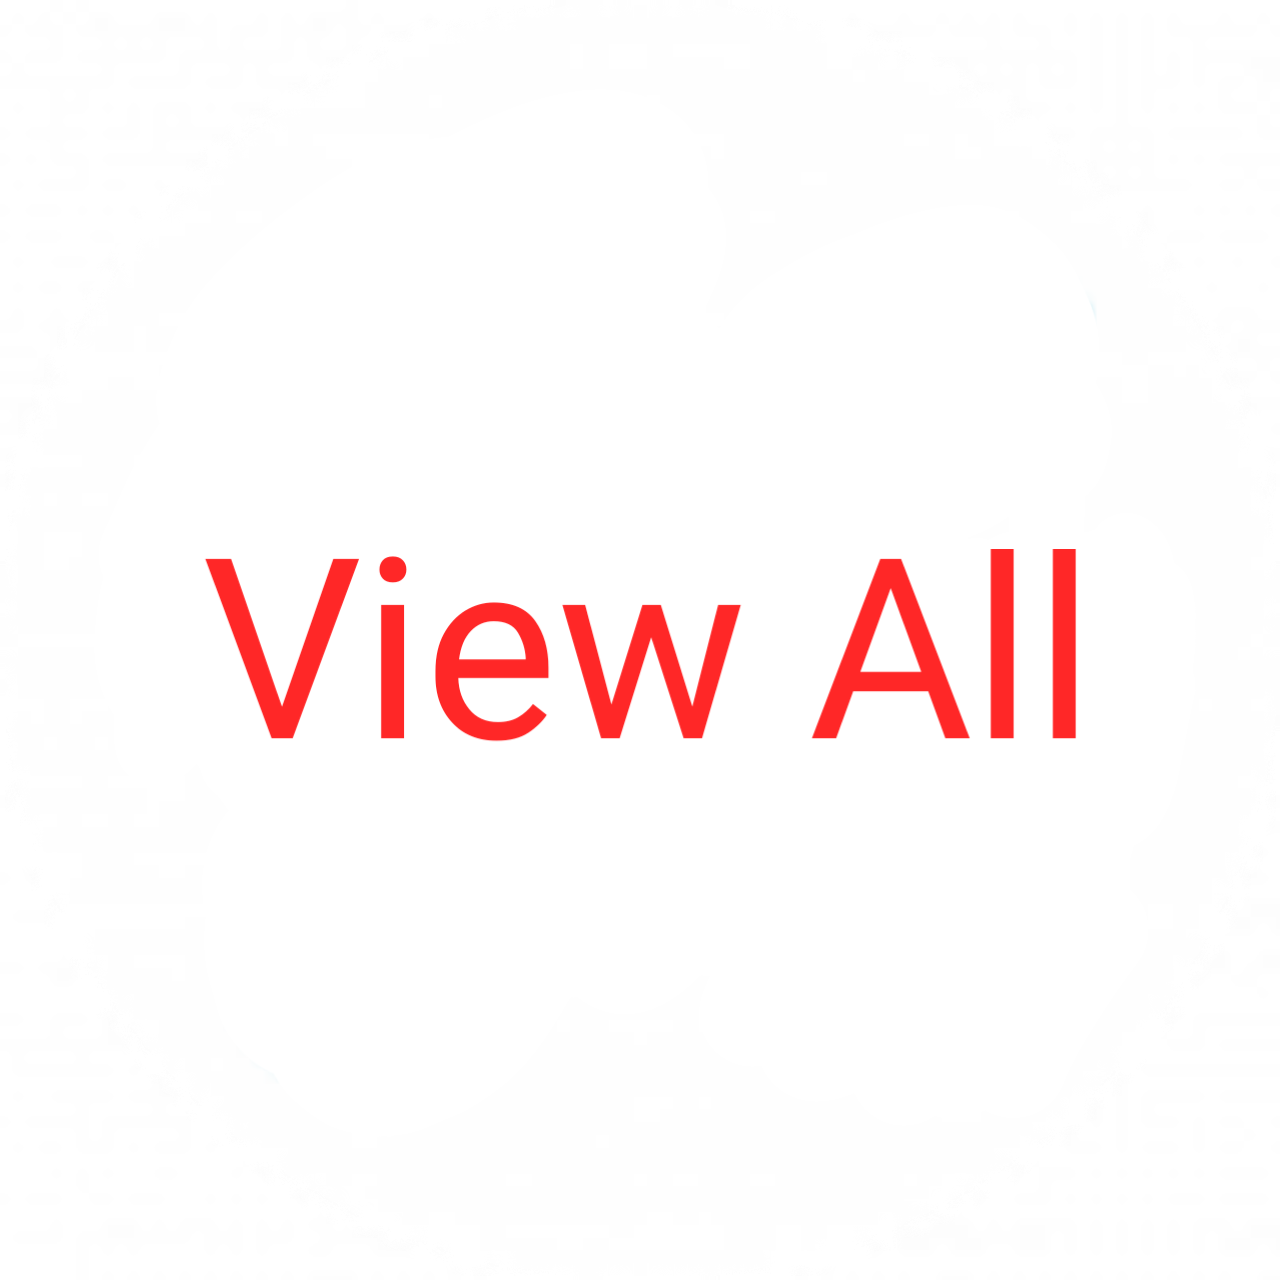 View all category